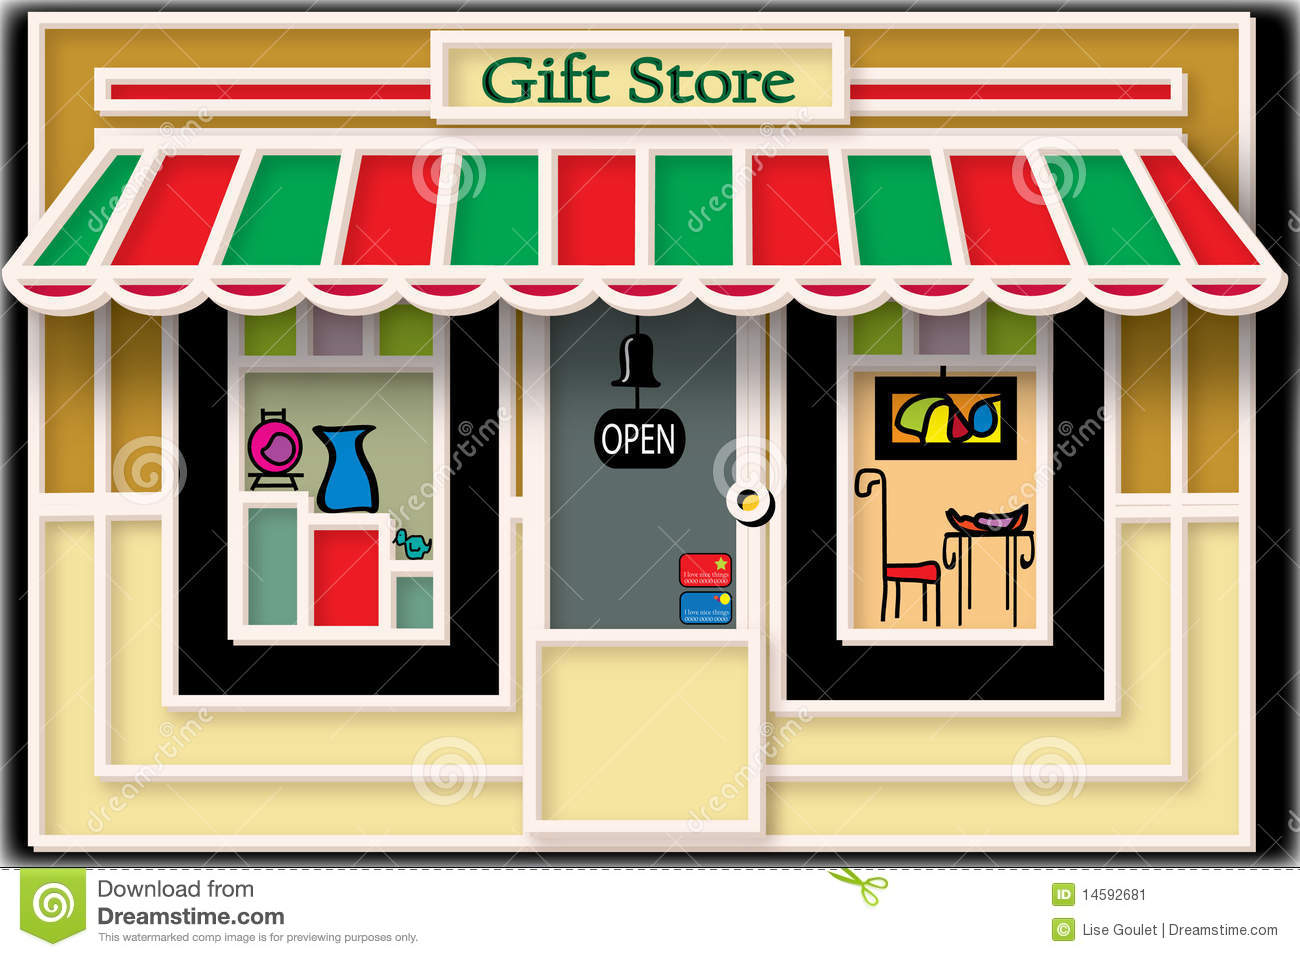 Stock Image Local Gift Store Illustration Image14592681 on Small Barn Plans